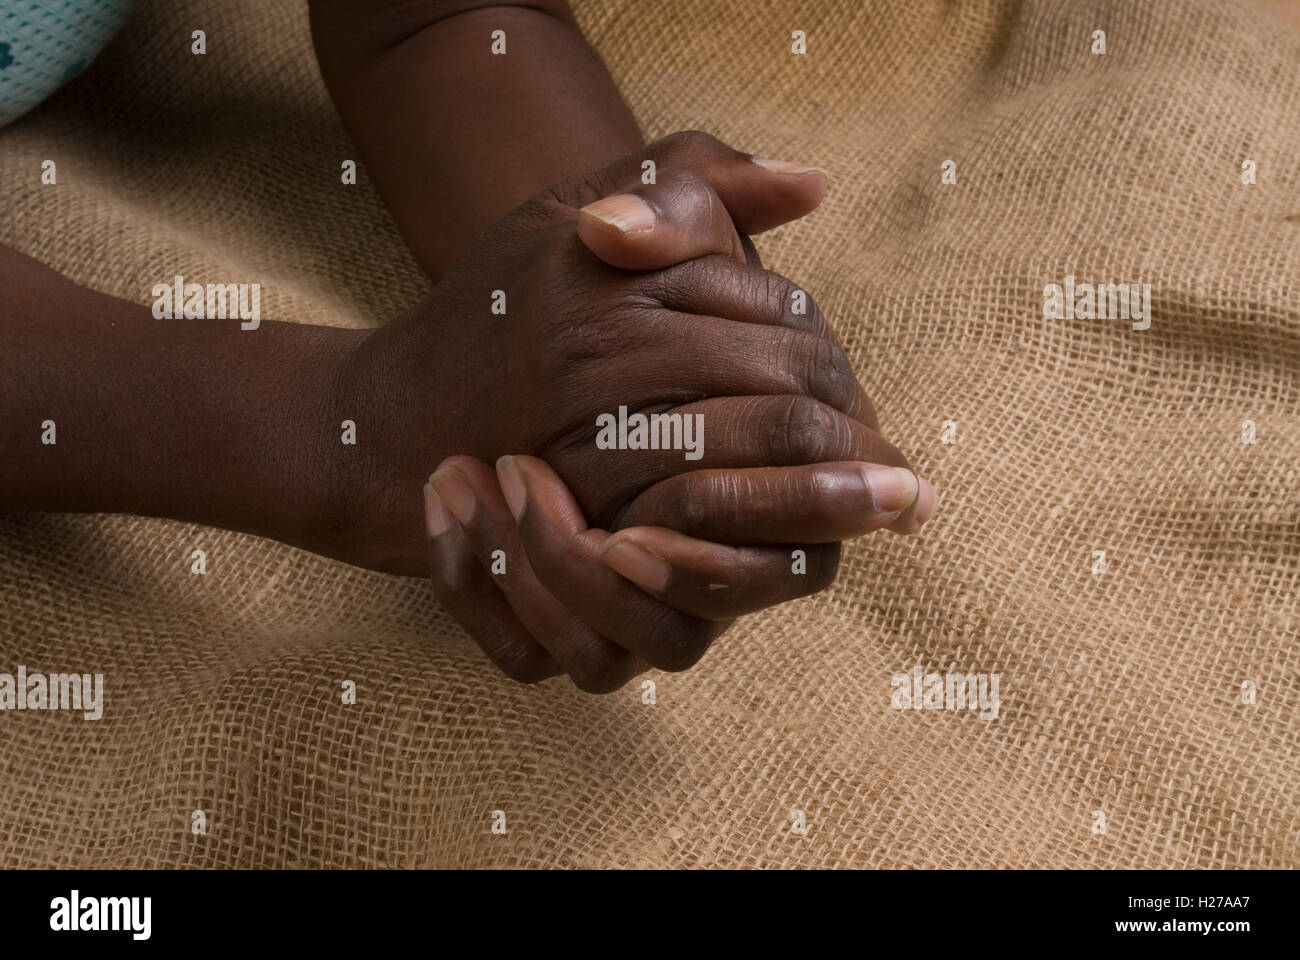 African's hands clasped in prayer or repose - Stock Image